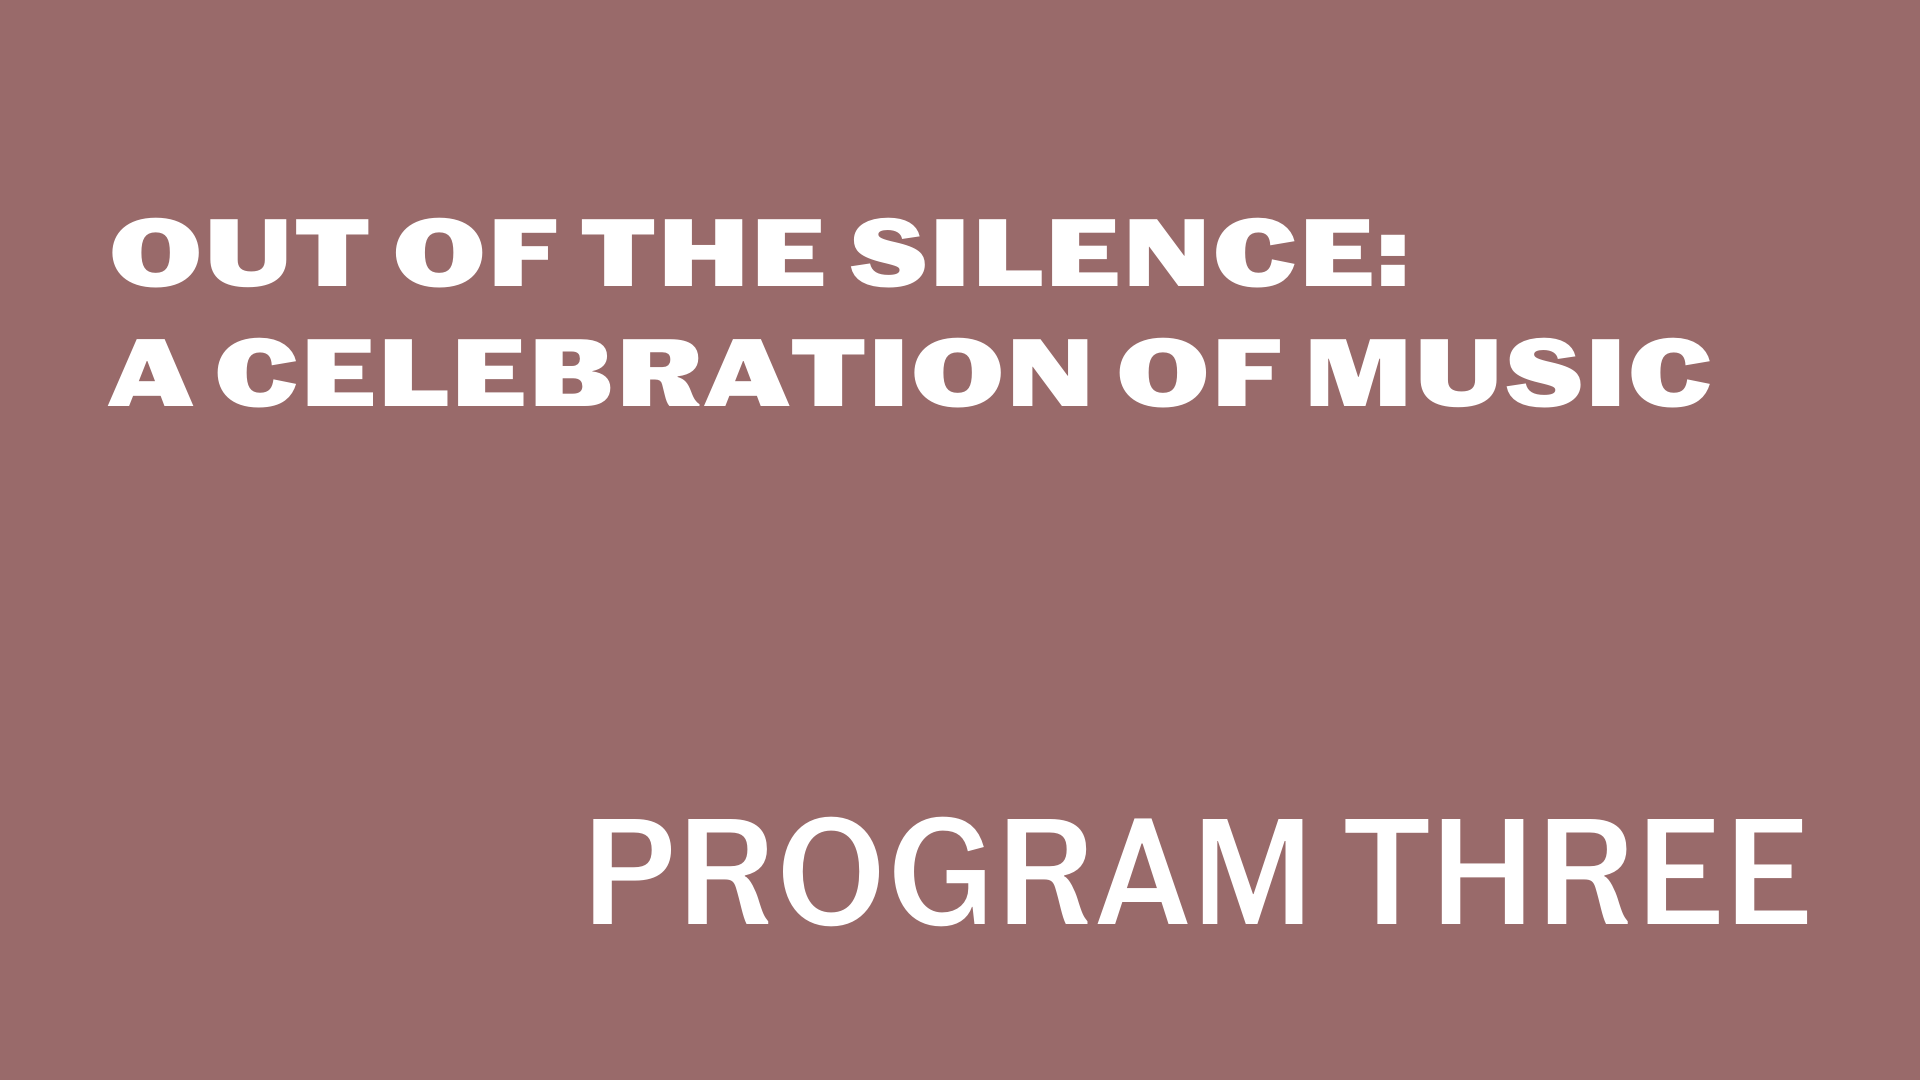 [Out of the Silence:A Celebration of MusicProgram Three]